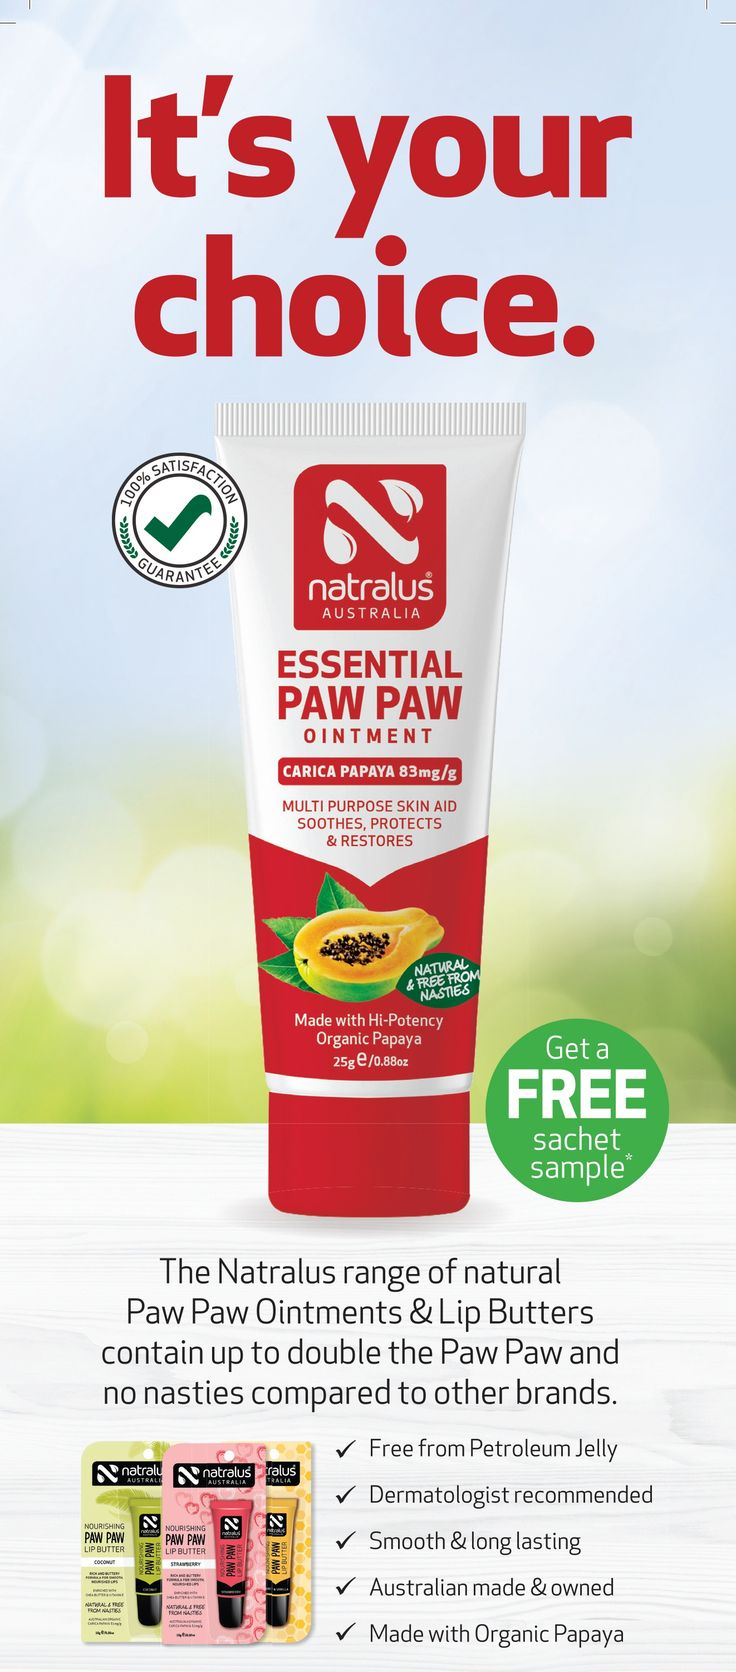 Free Sample of Natralus Essential Paw Paw Ointment - http://sleekdeals.co.nz/deals/2017/9/free-sample-of-natralus-essential-paw-paw-ointment.aspx